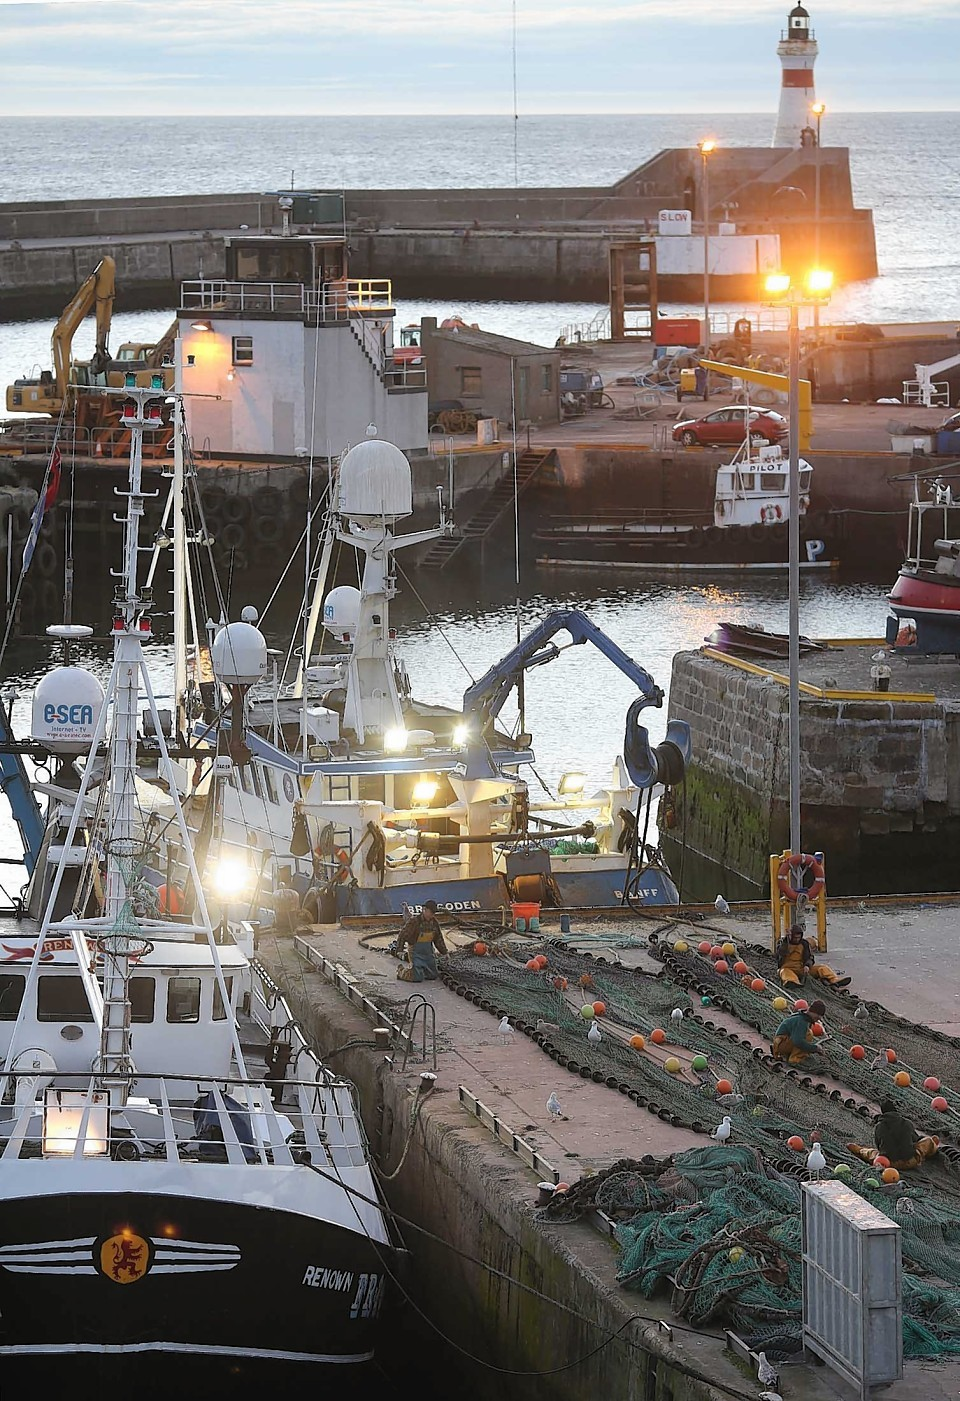 The National Federation of Fishermen's Organisations fear its members' interests are in danger of being sacrificed